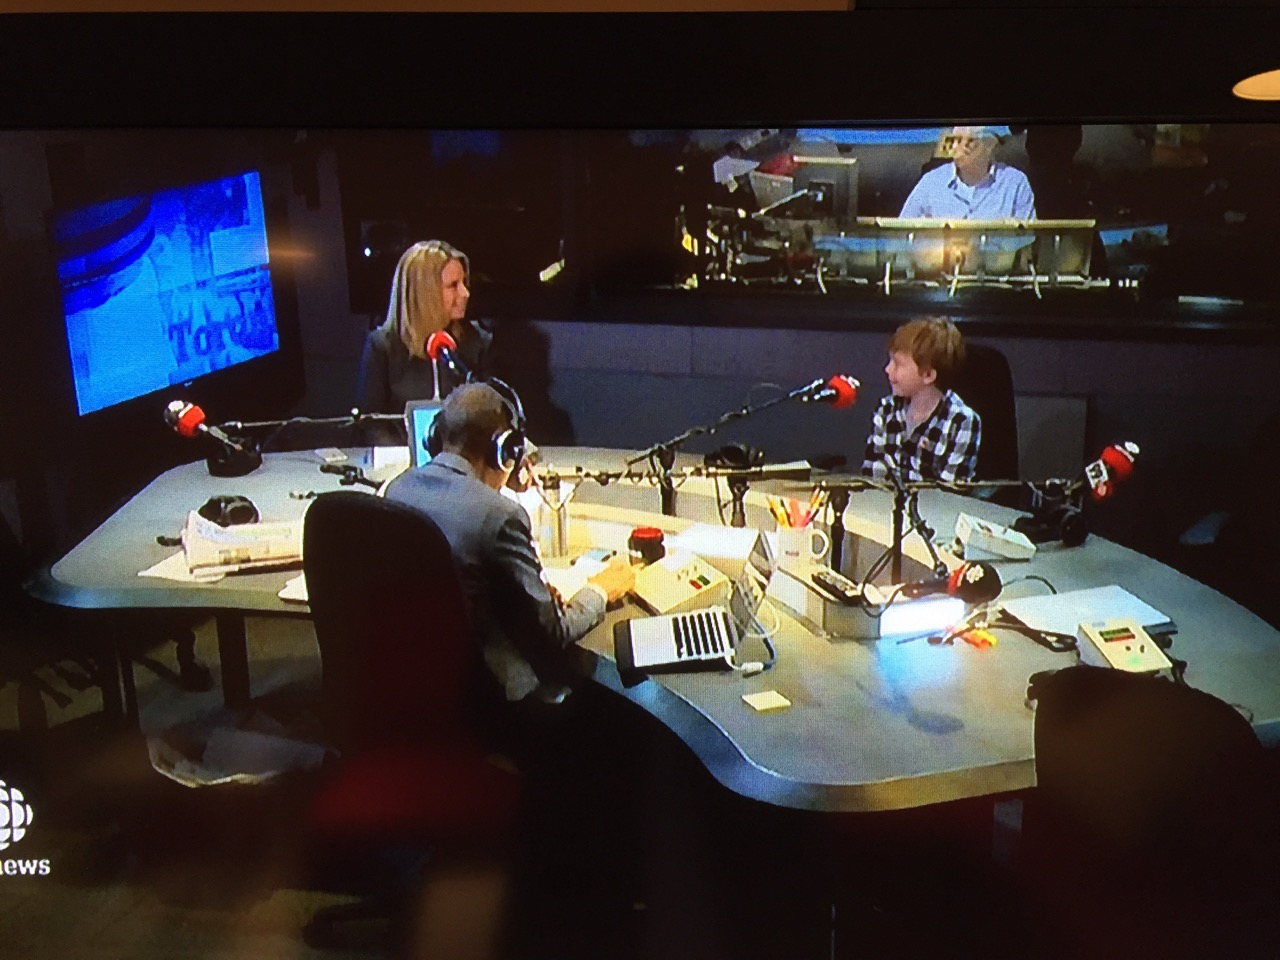 Toronto's CBC's Metro Morning radio show host interviewed the young producer/director and mom Natalie.